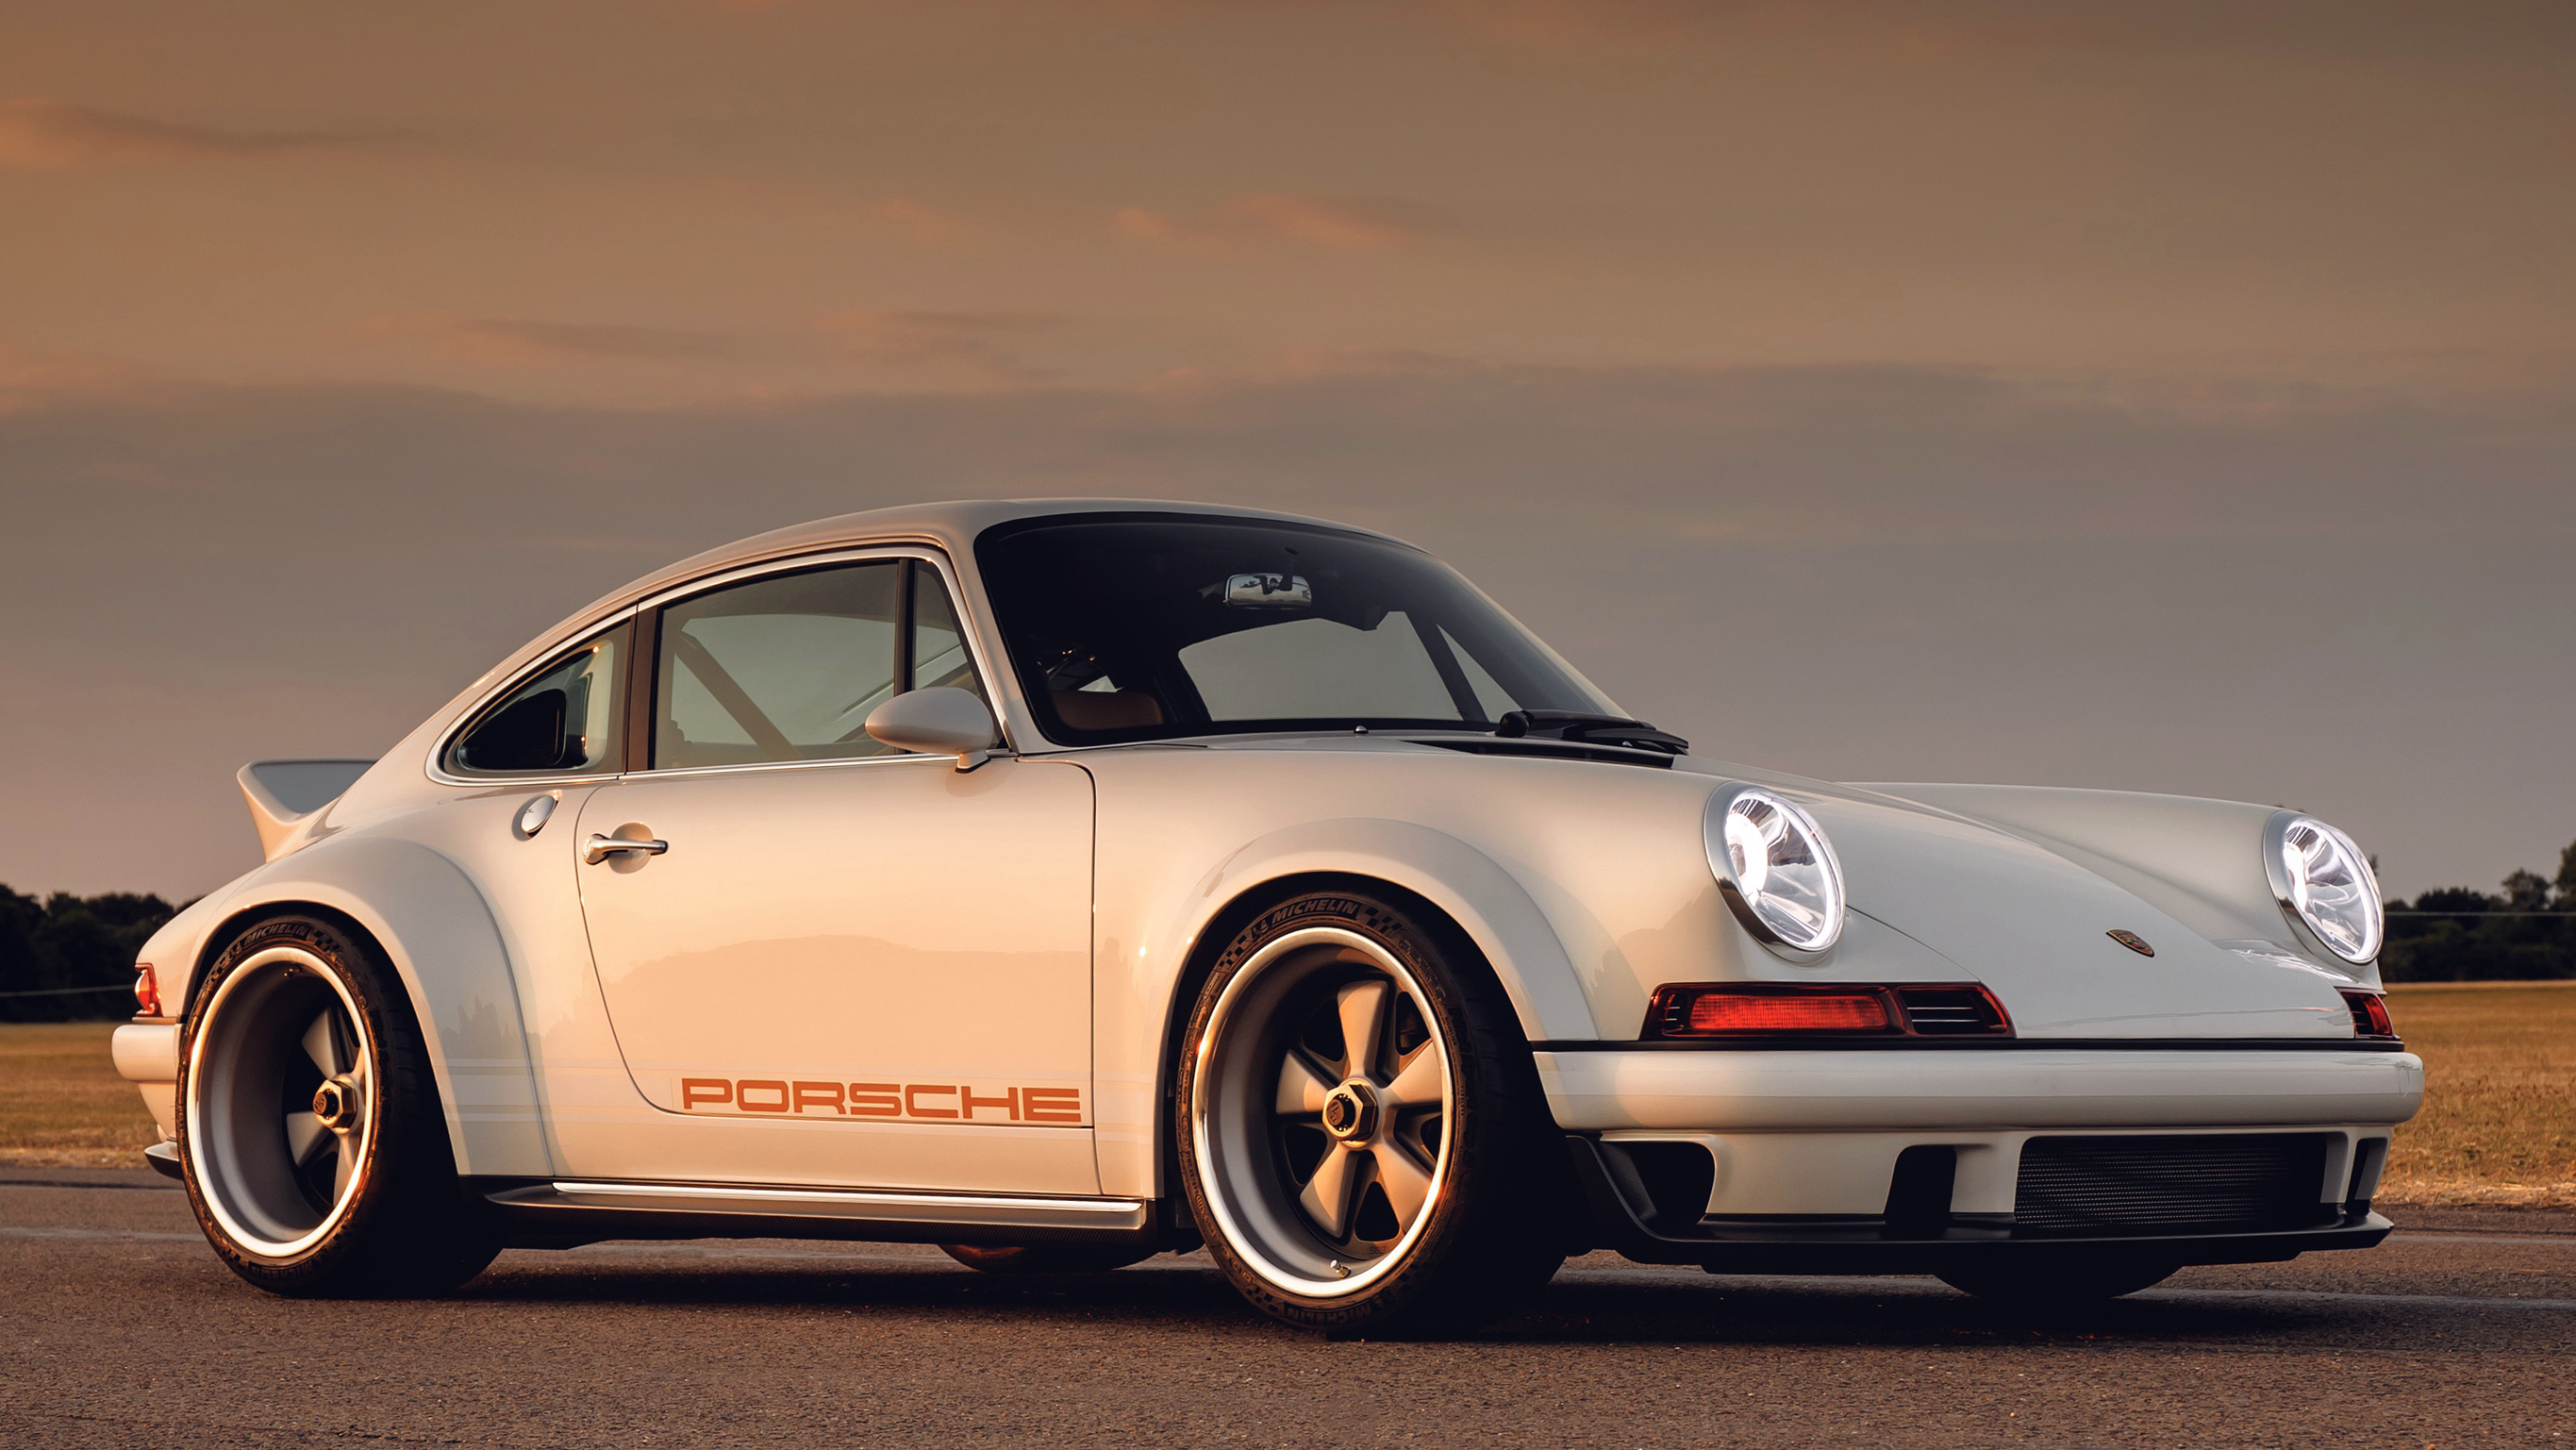 Porsche Singer Vehicle Design Dls Hd Cars 4k Wallpapers Images Backgrounds Photos And Pictures